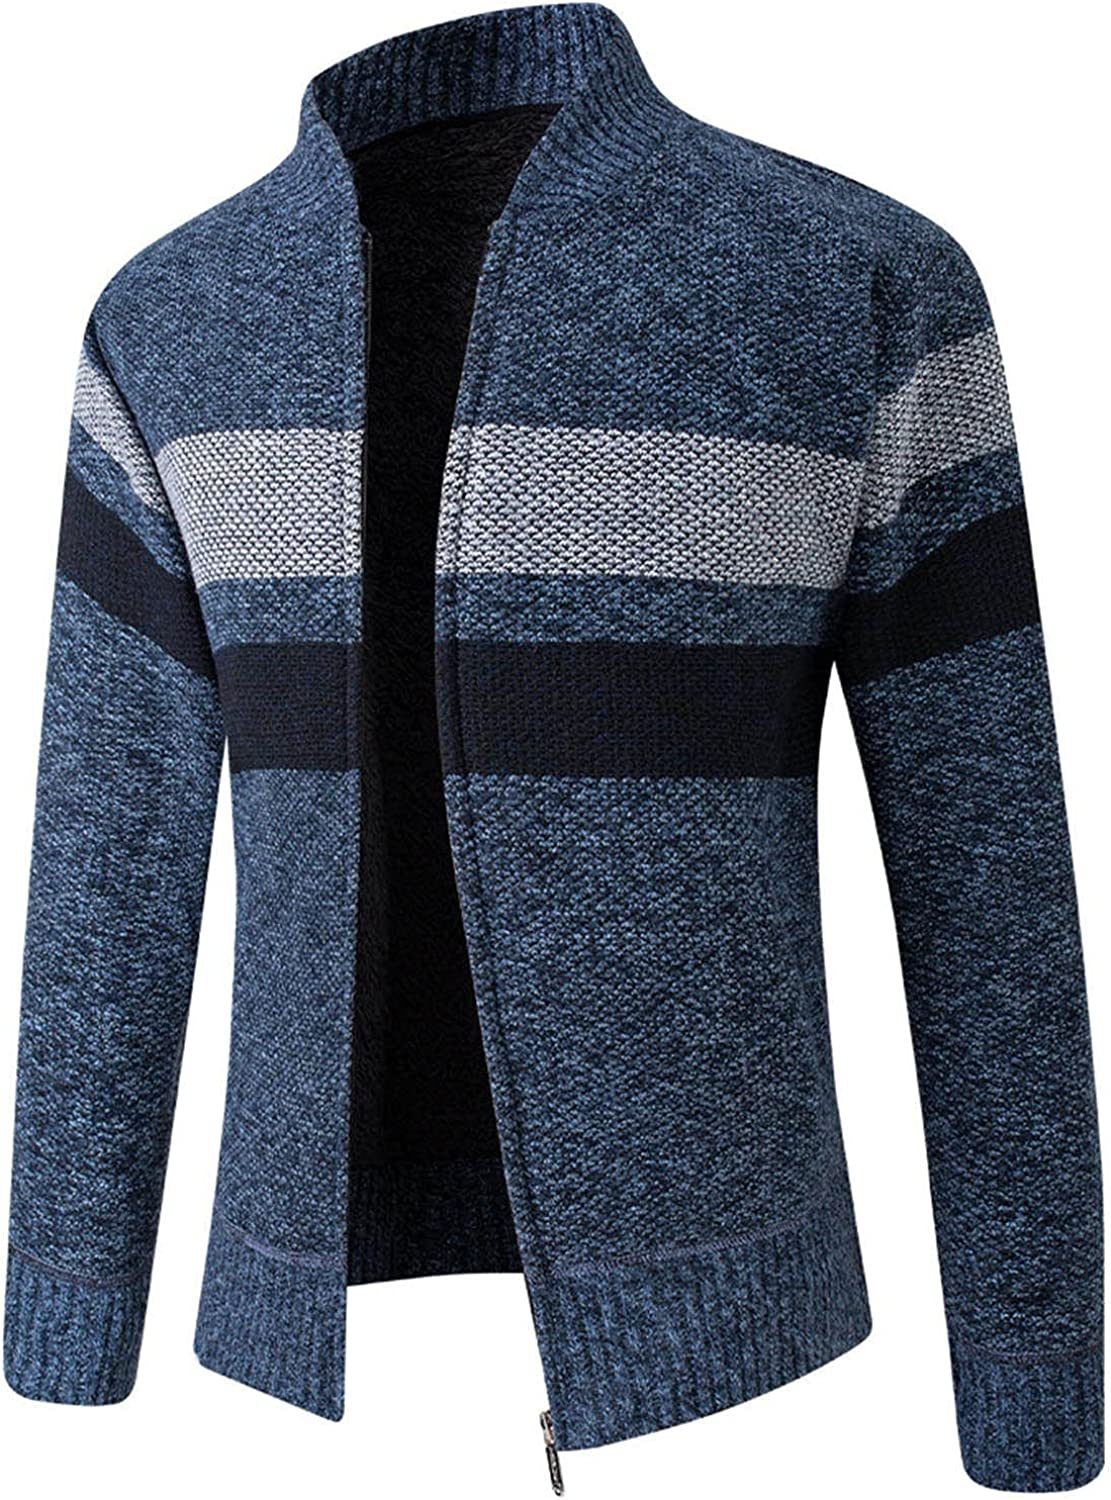 XXBR Sweater Jackets for Mens, Zipper Stand-up Collar Knitted Cardigan Coat Long Sleeve Color Block Patchwork Outerwear